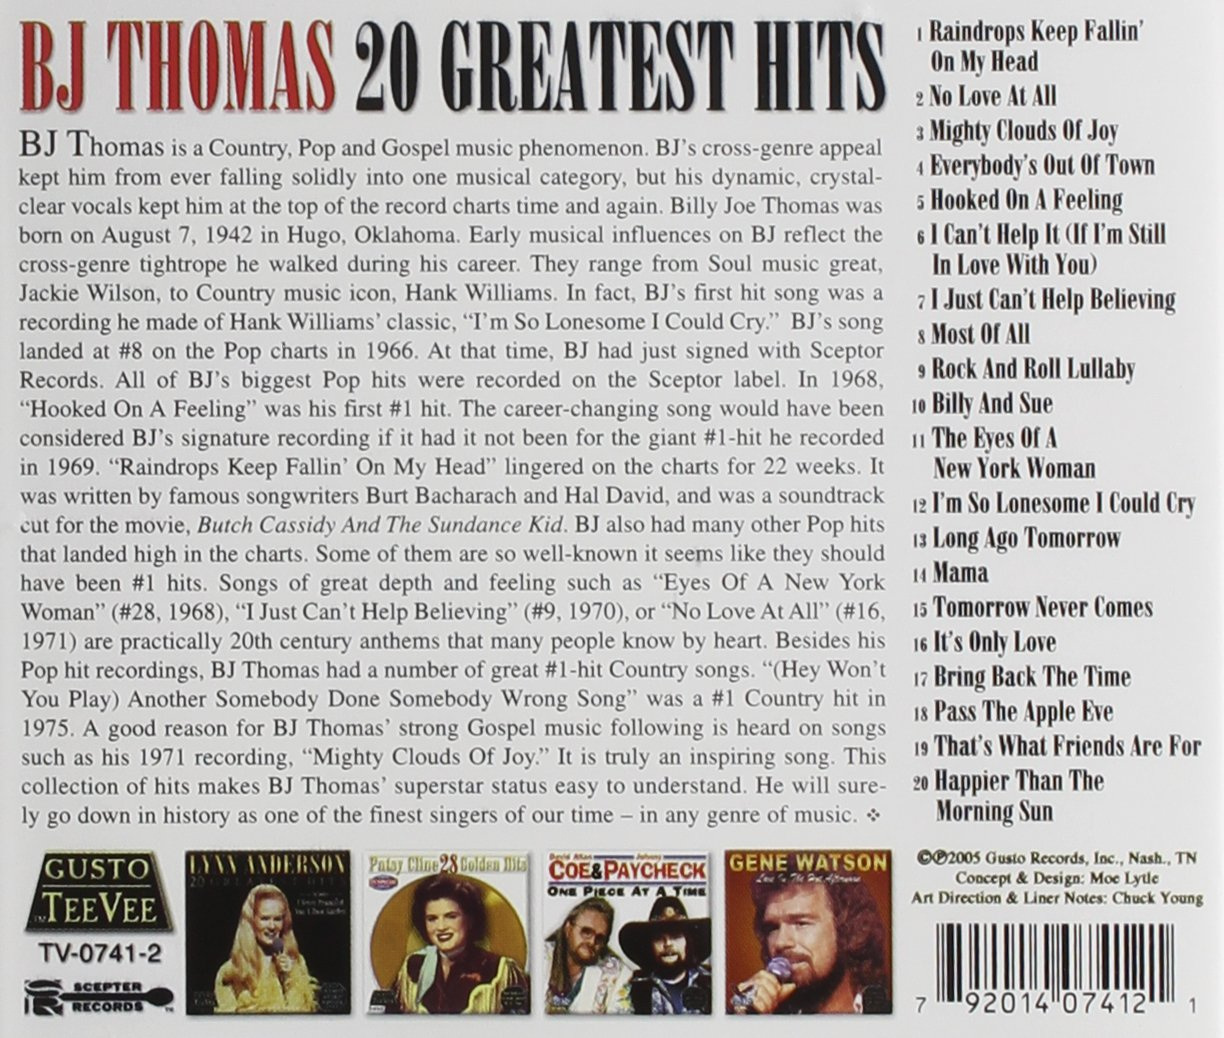 Bj Thomas - 20 Greatest Hits - Amazon.com Music